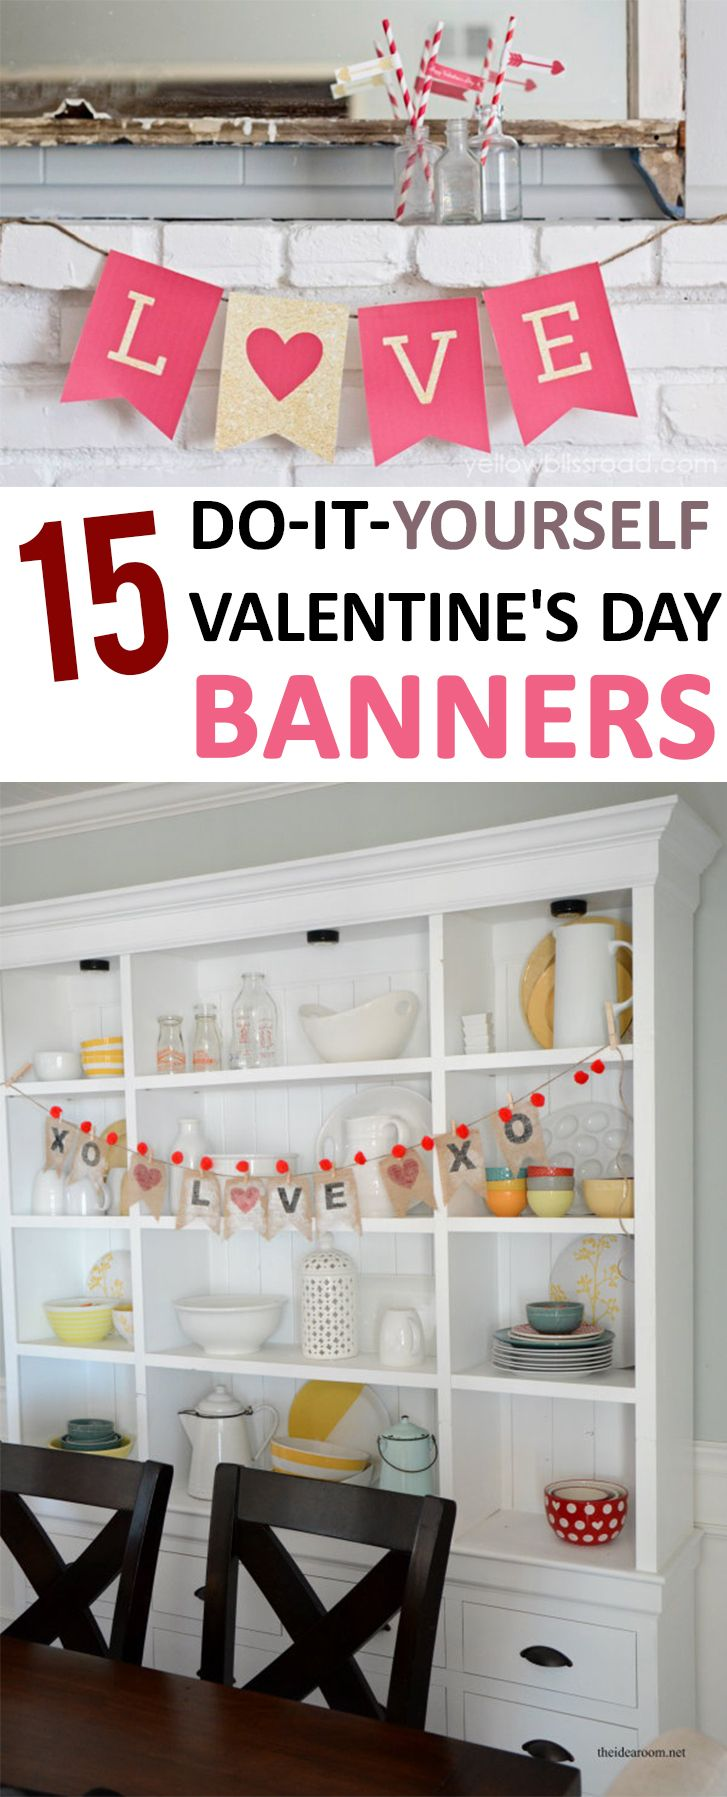 15 do it yourself valentines day banners holidays banners and 15 do it yourself valentines day banners solutioingenieria Gallery